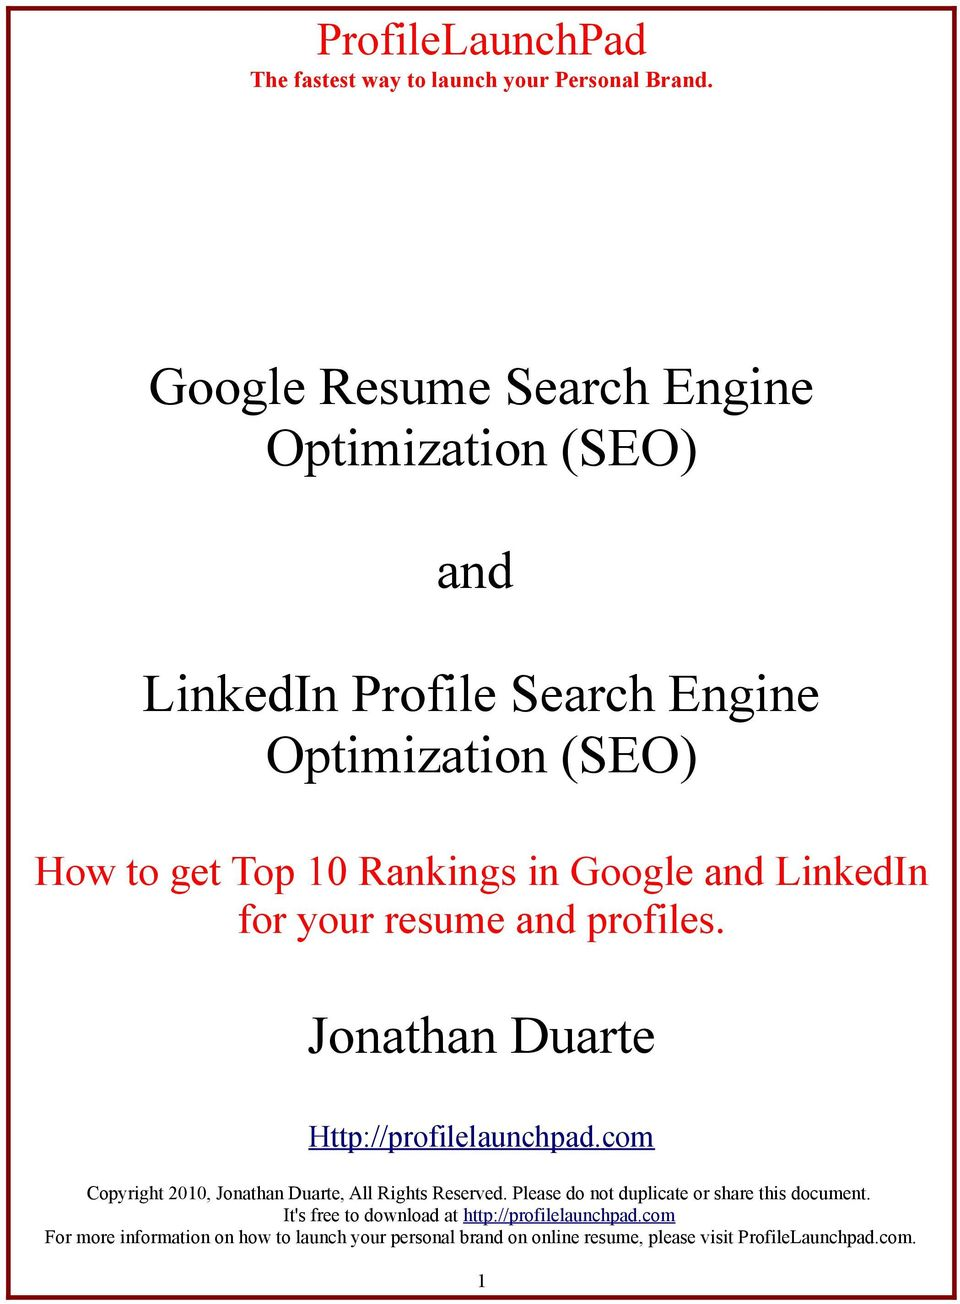 get Top 10 Rankings in Google and LinkedIn for your